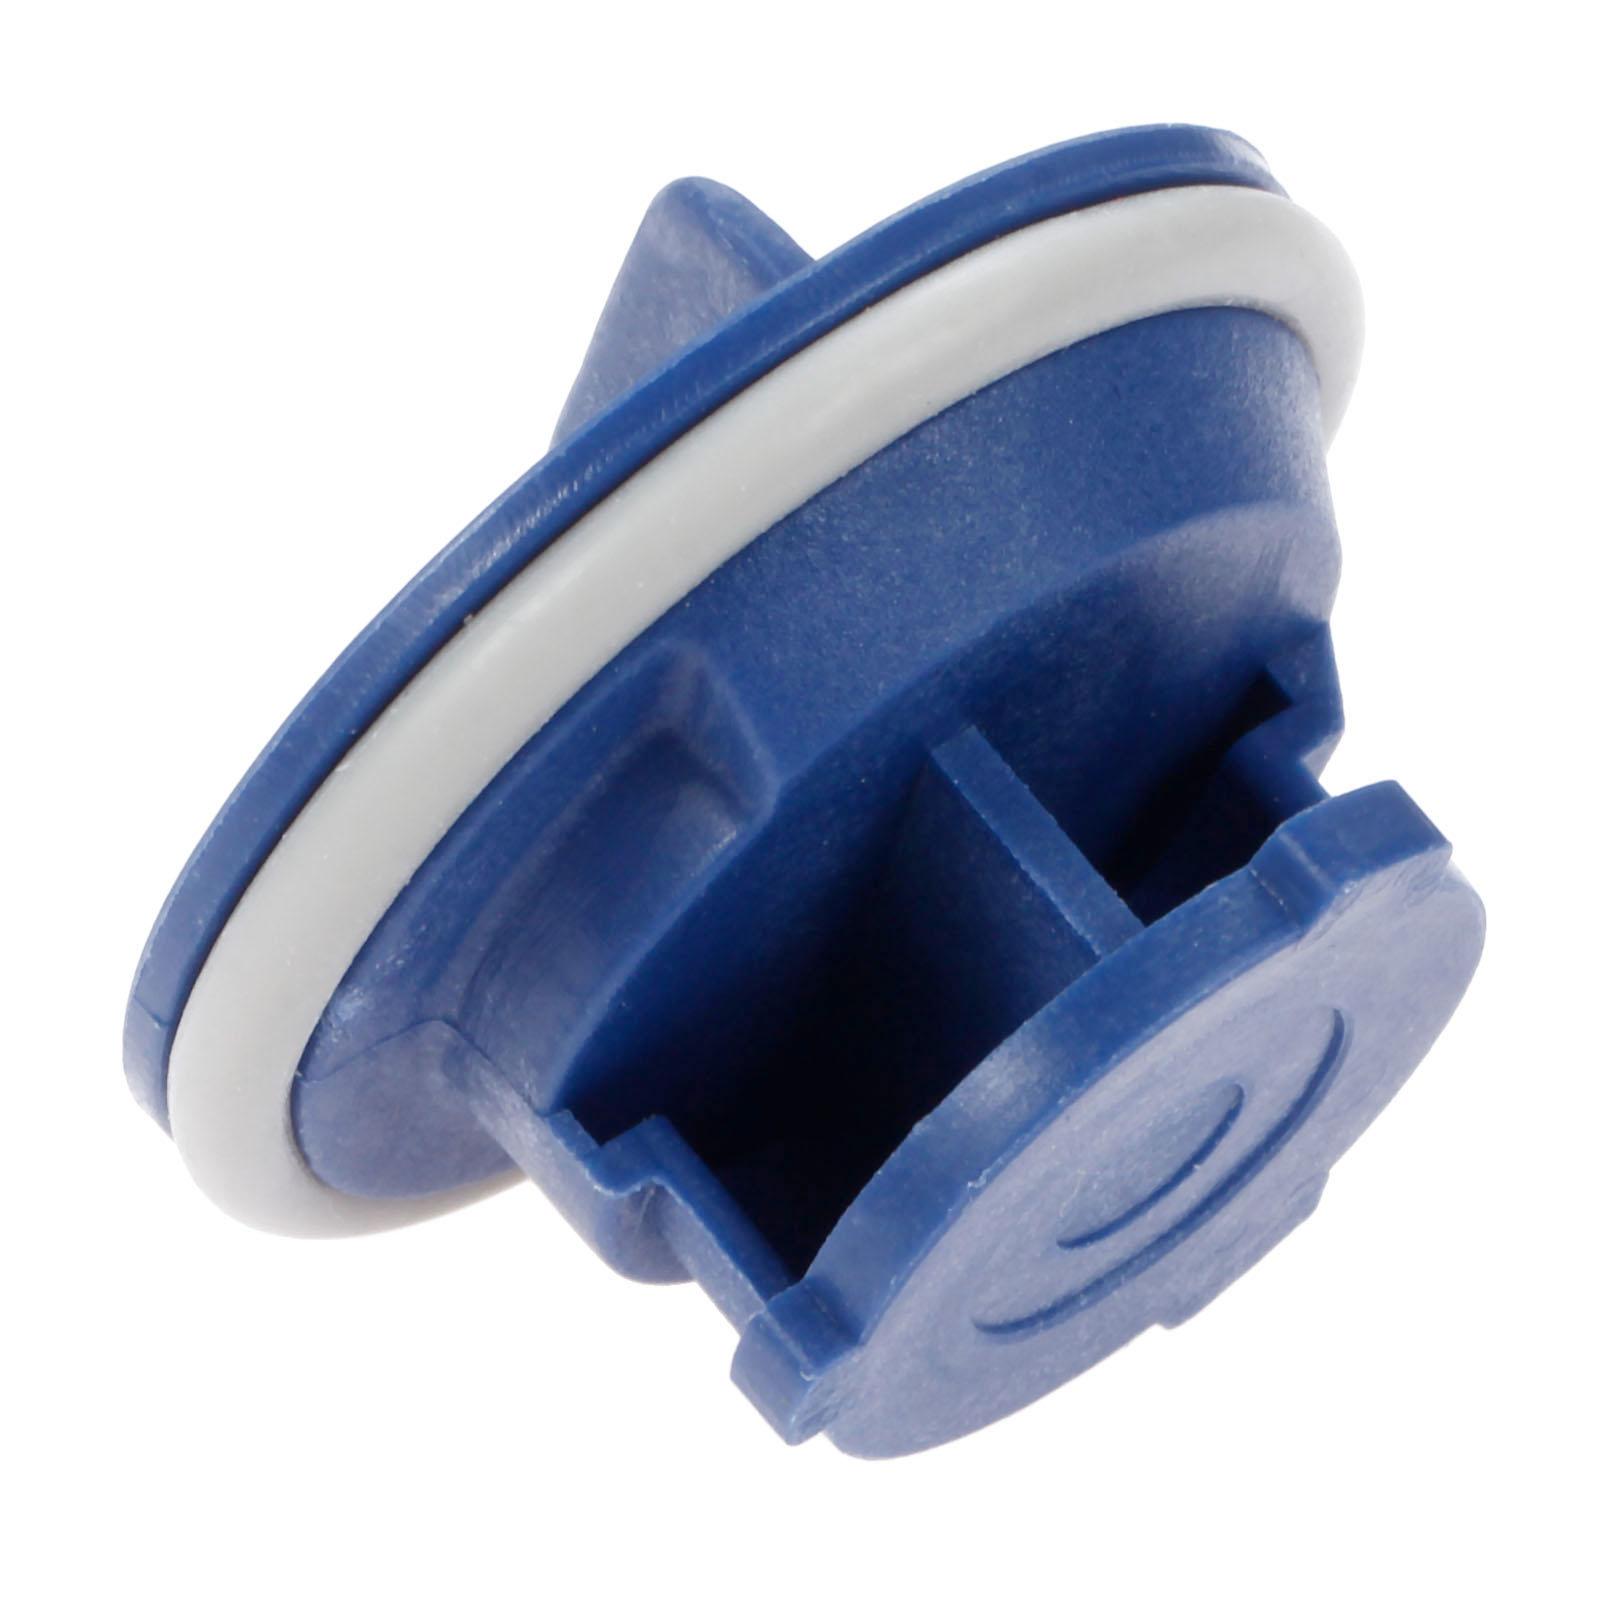 Dophee WPW10077881 Fit For Whirlpool Dishwasher Dispenser Rinse Aid Cap